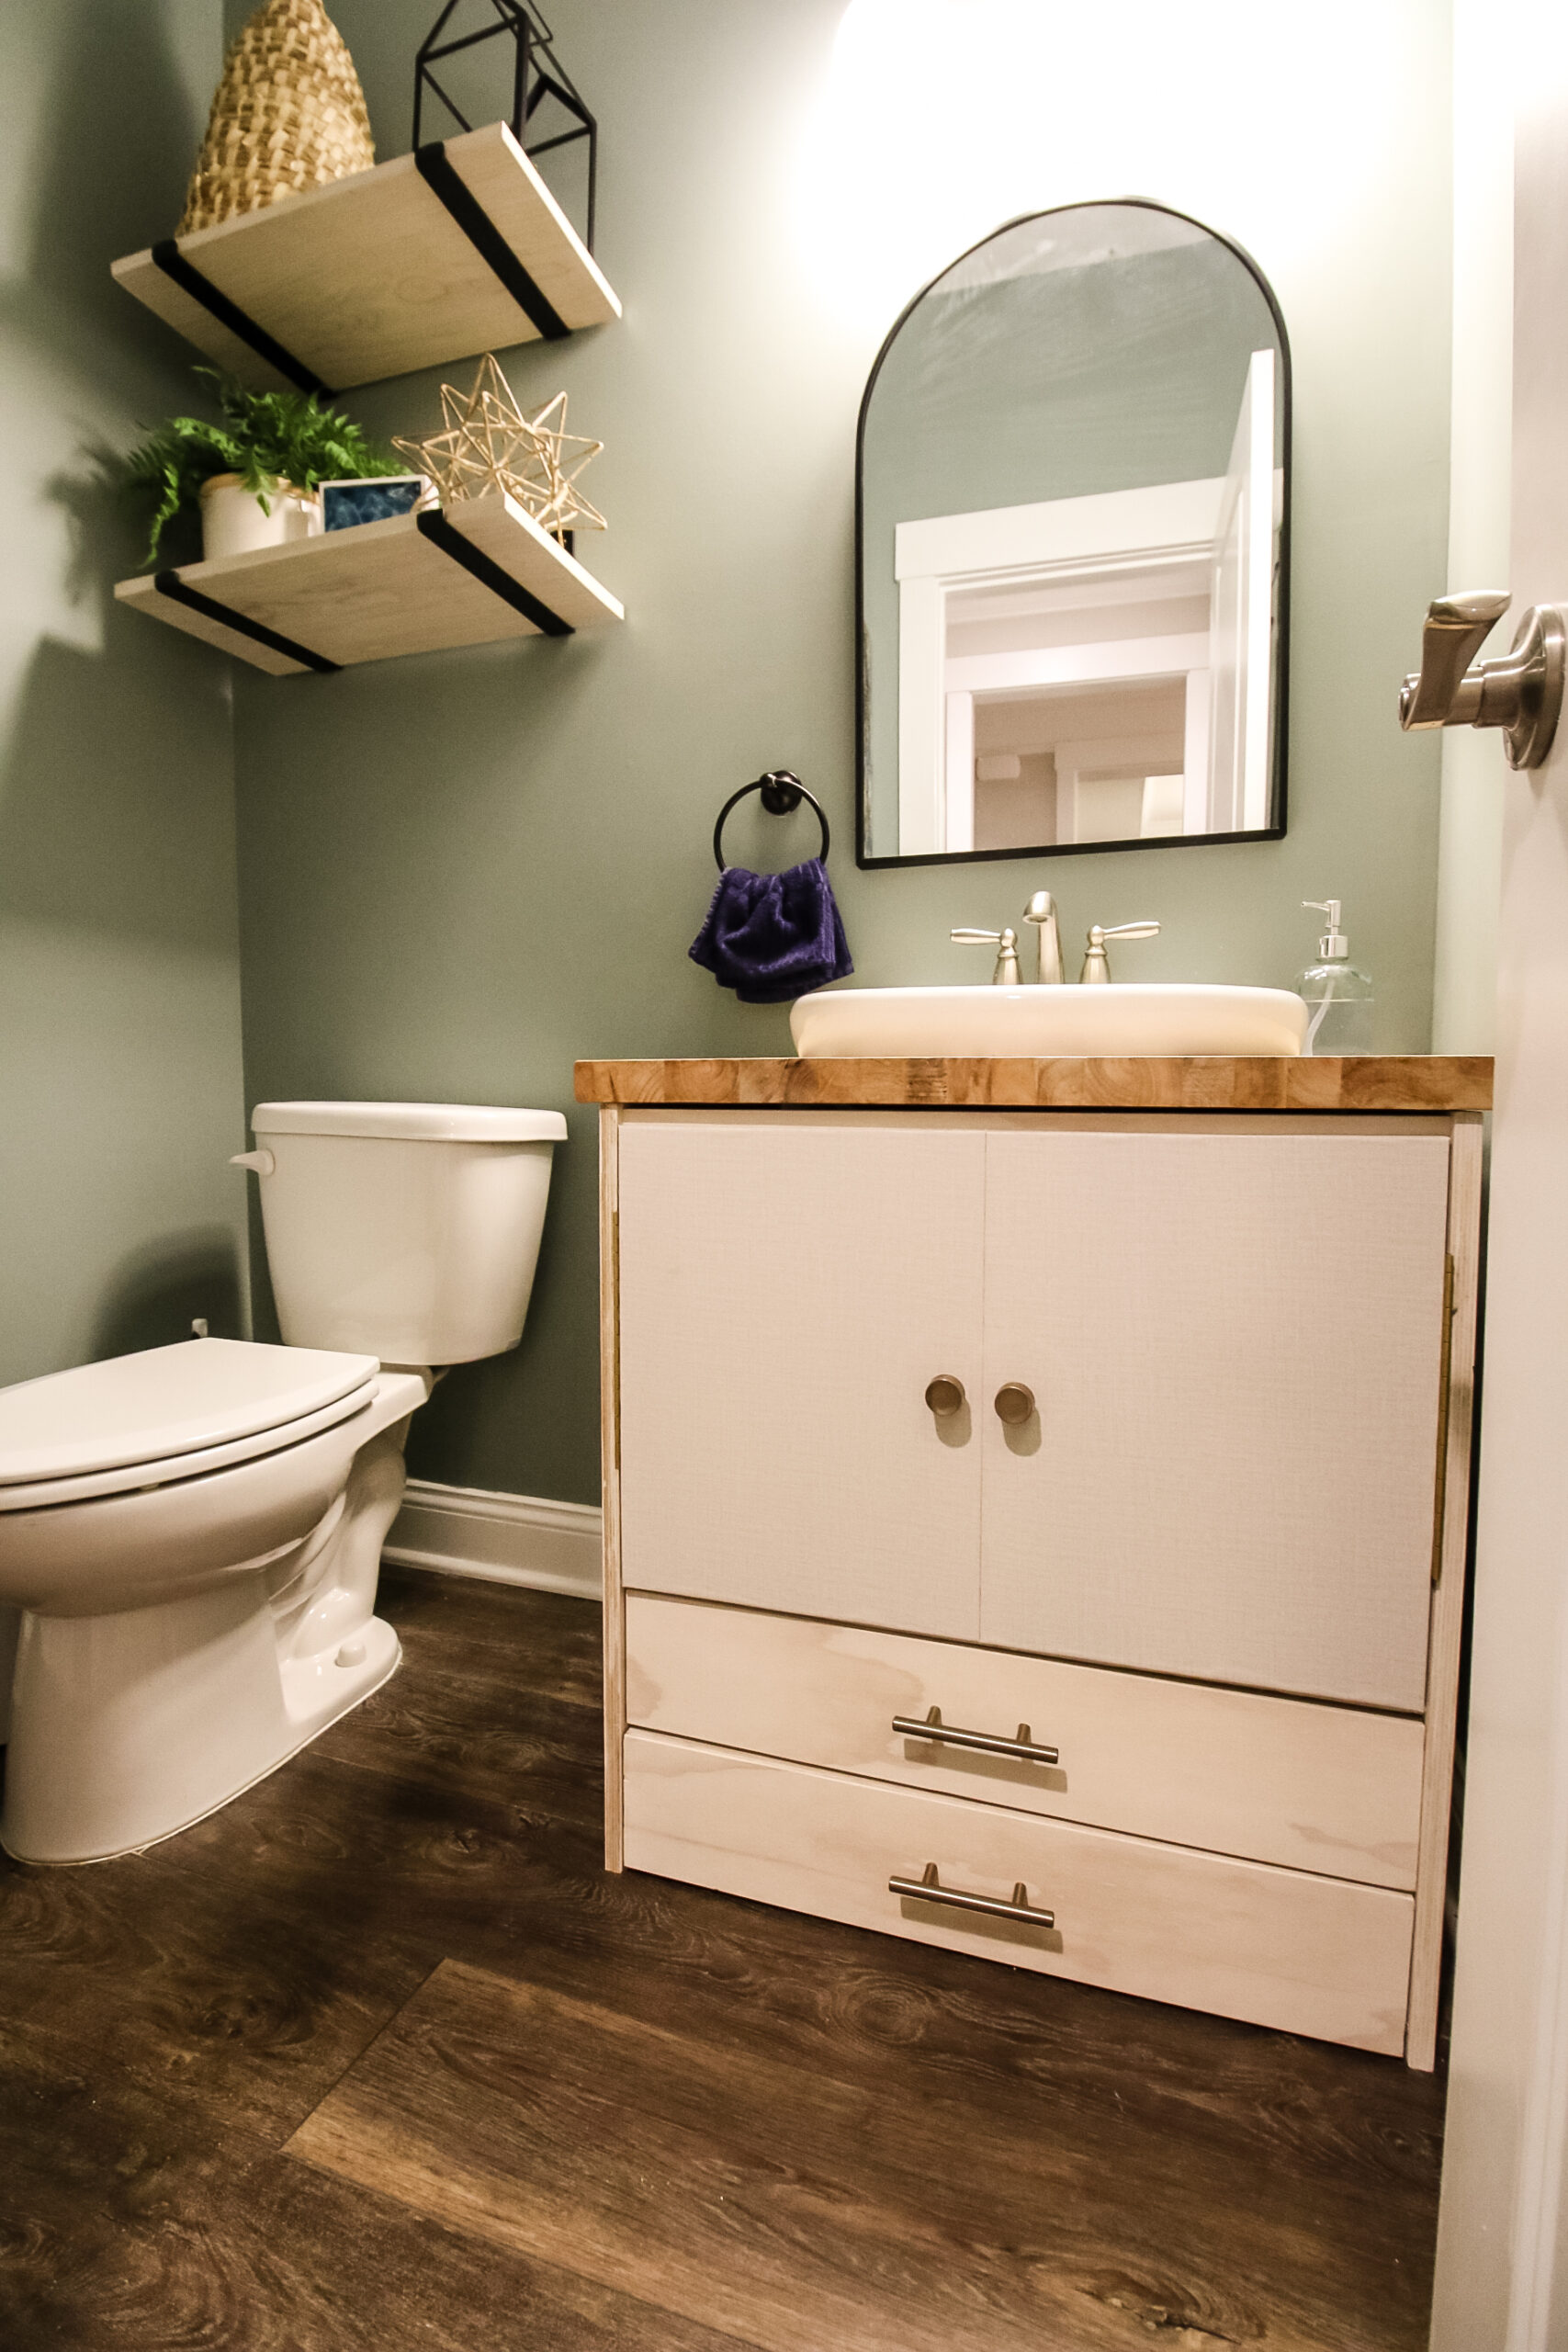 How to build a pedestal sink vanity - Charleston Crafted